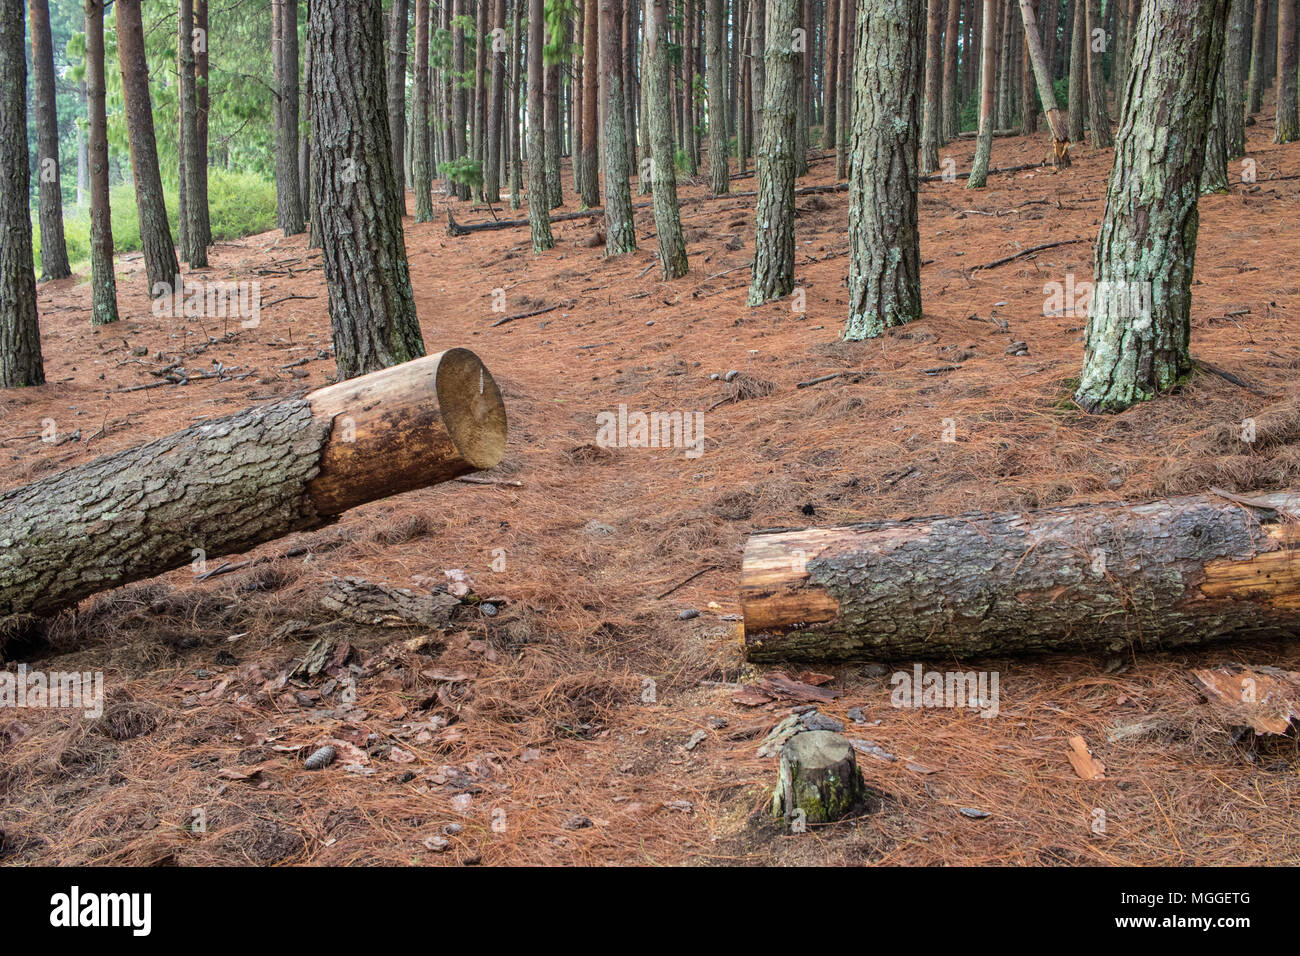 Large pine tree cut down mechanically in a forest image with copy space in landscape format - Stock Image